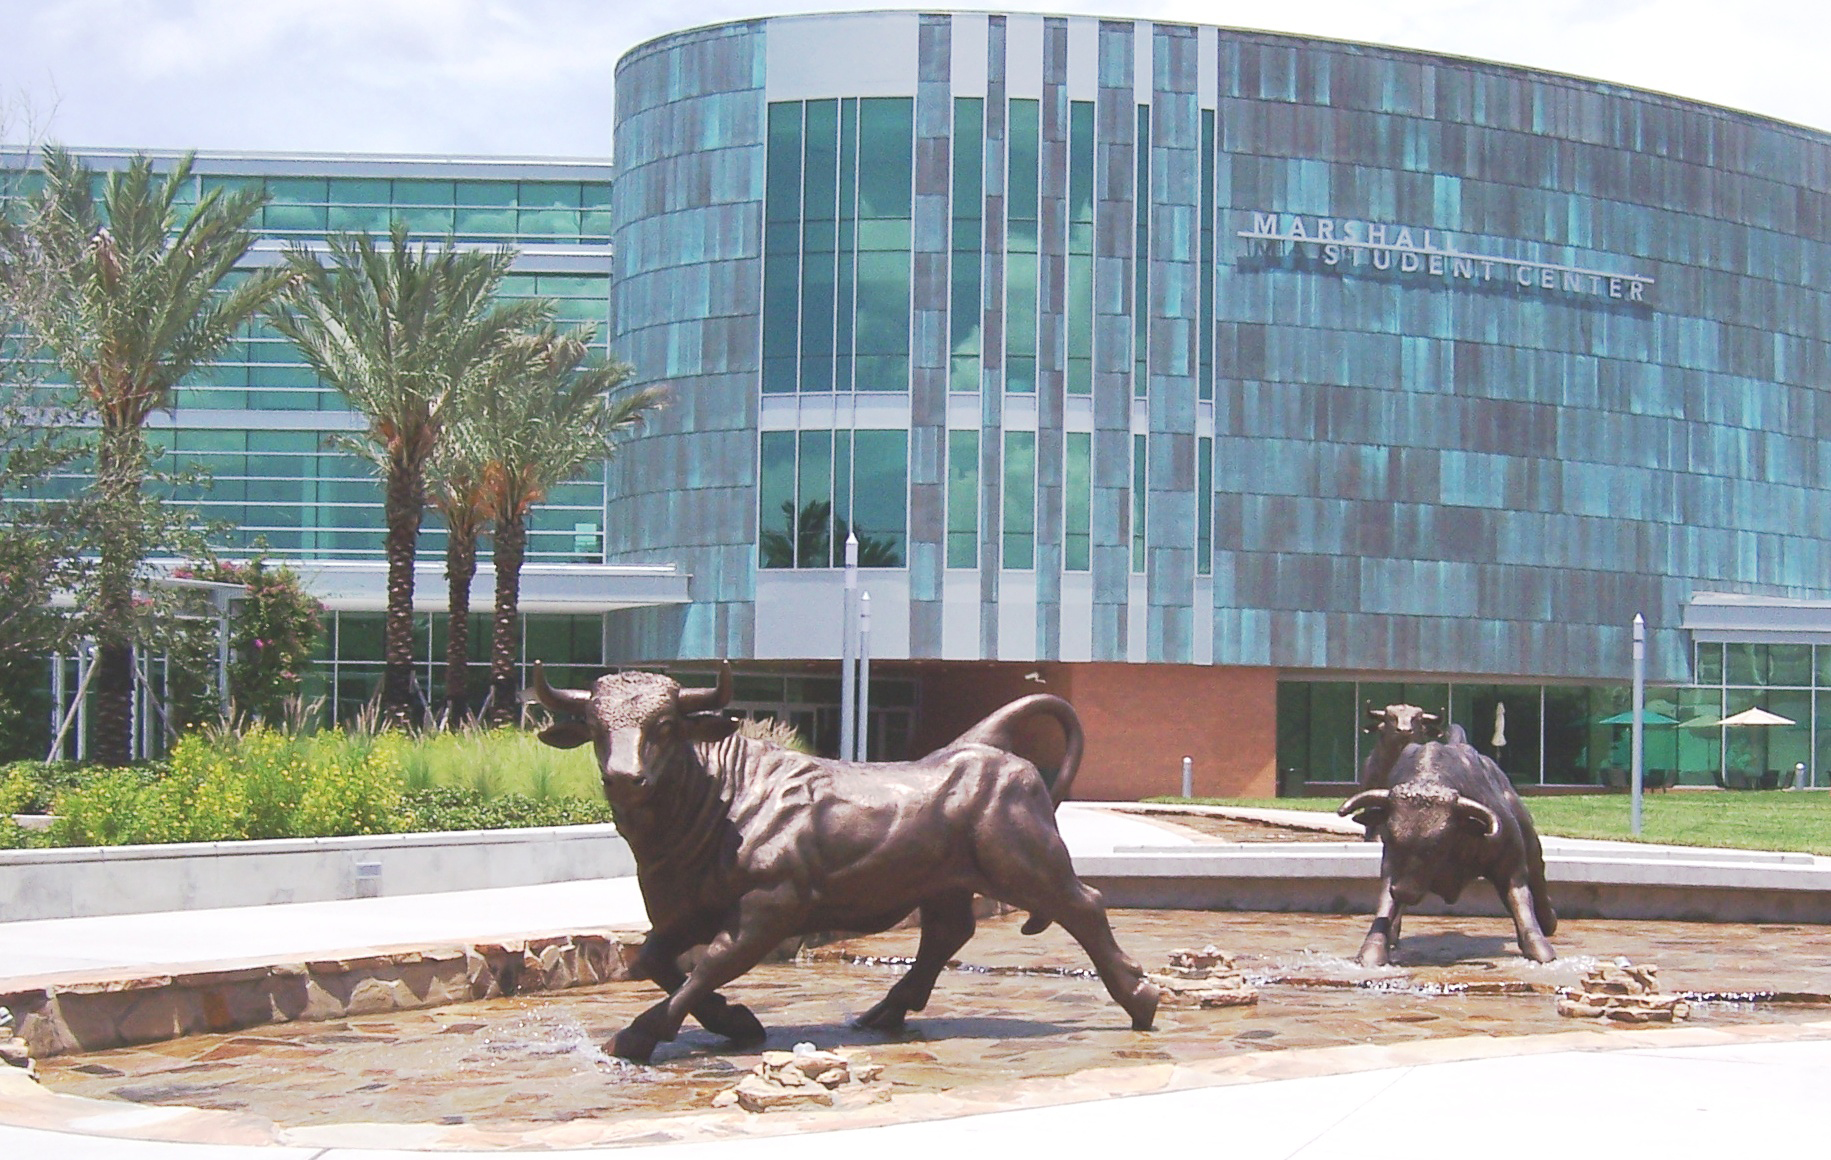 cm s guide to the university of south florida college magazine commons org